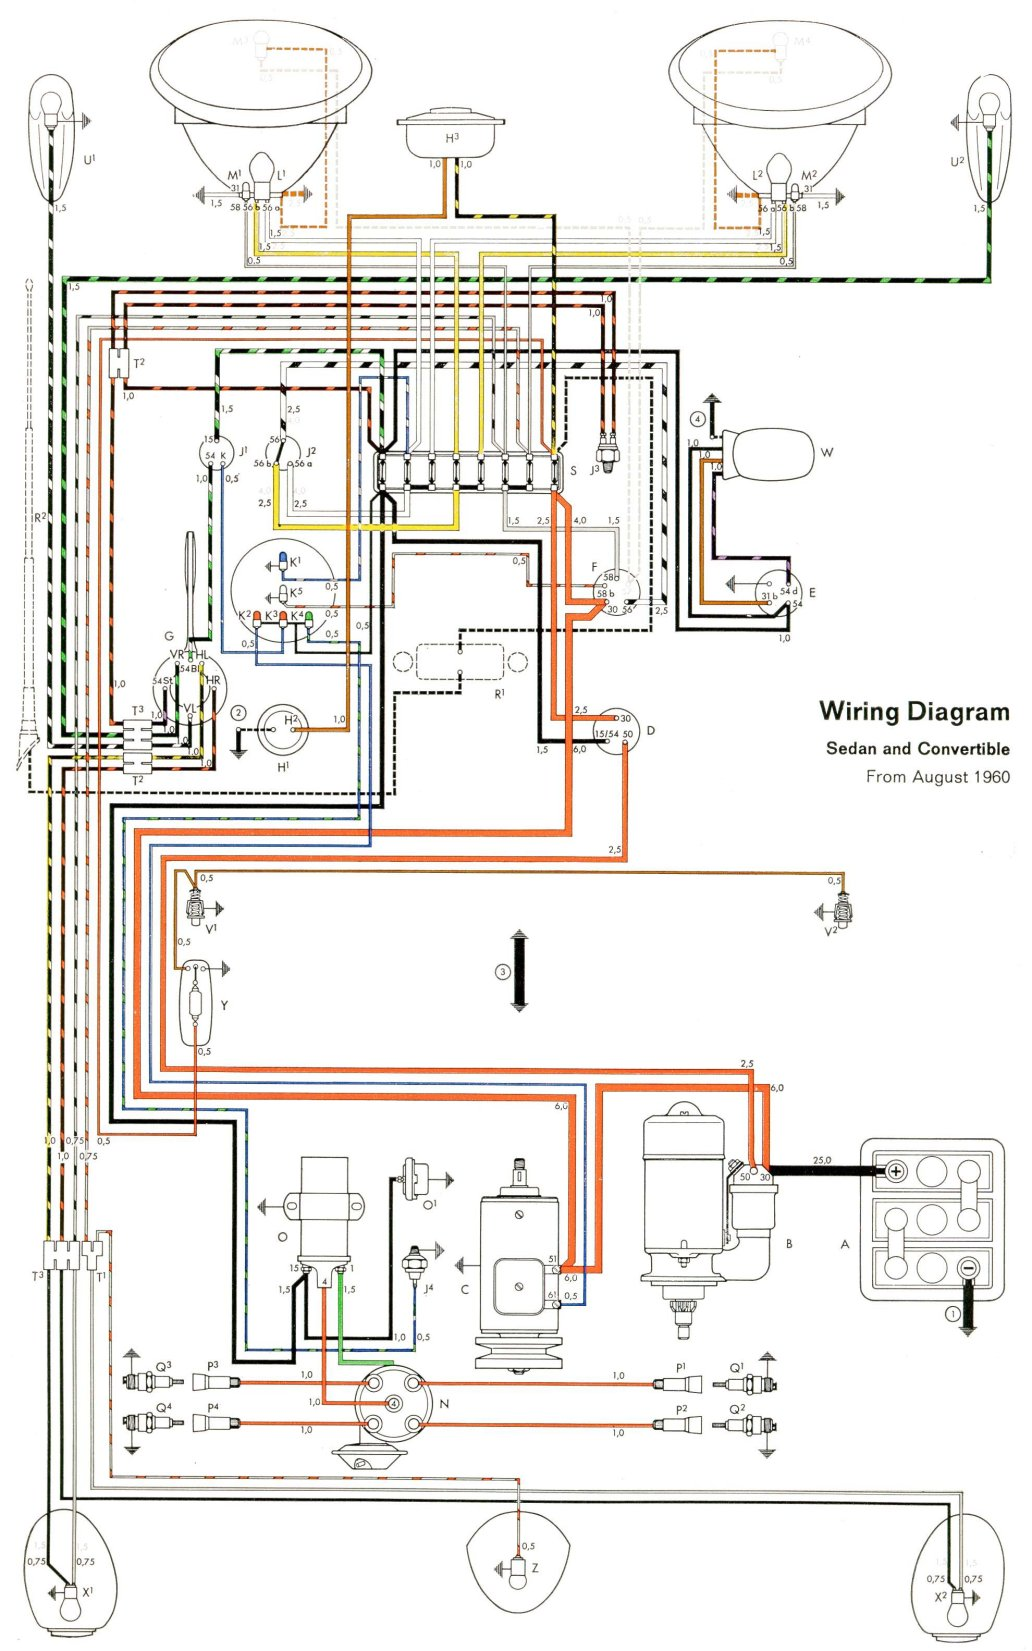 Super Beetle Wiring Diagram Change Your Idea With 1975 Volkswagen Thesamba Com Type 1 Diagrams Rh Vw 1974